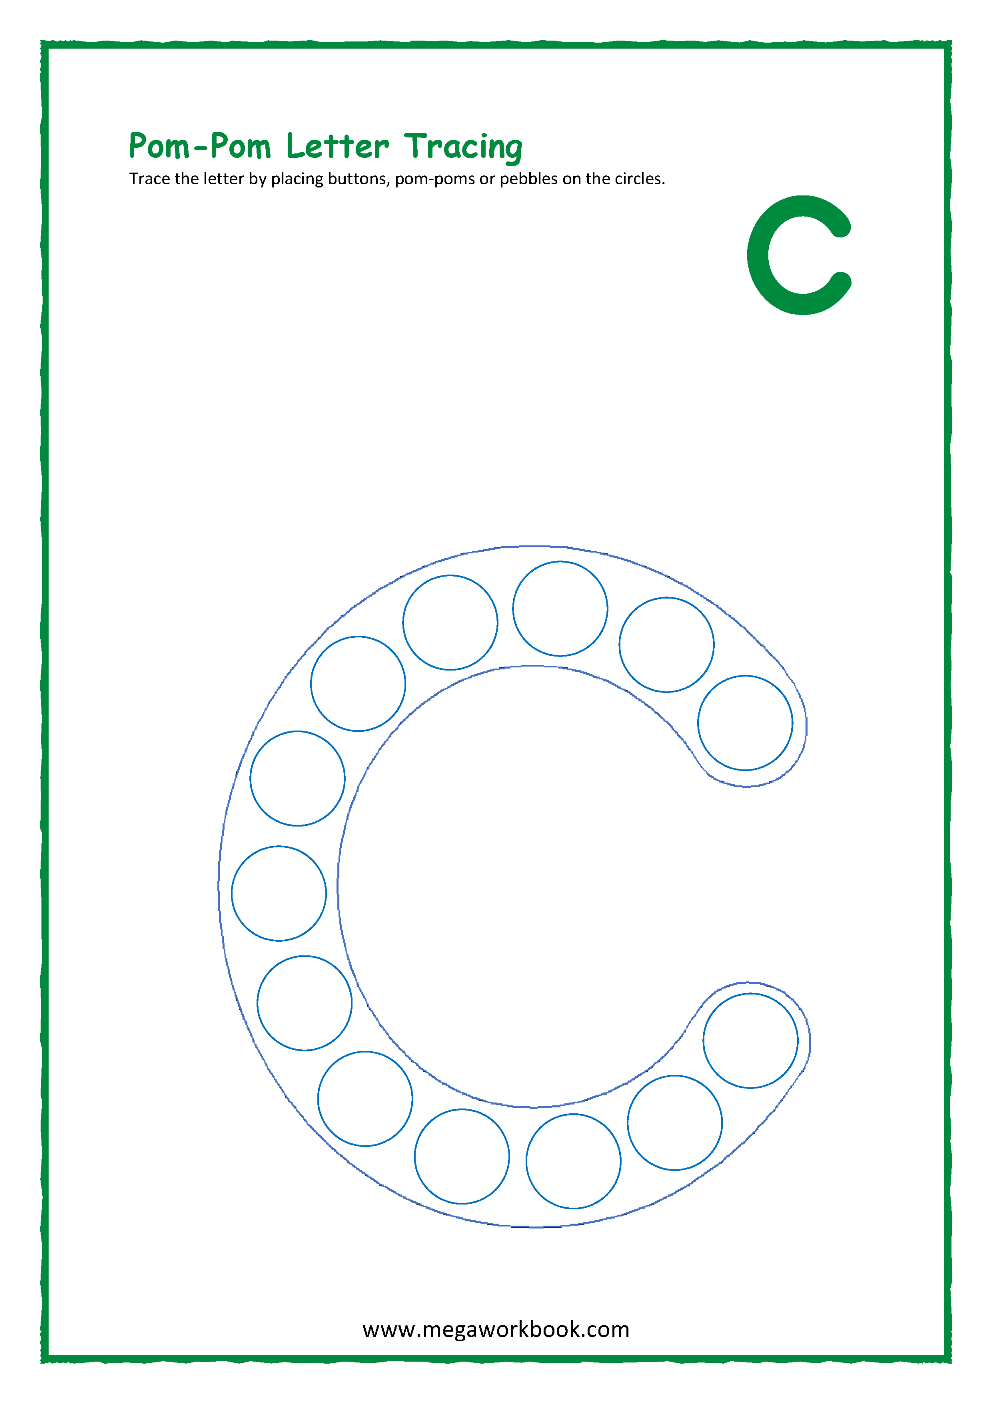 Letter C Activities - Letter C Worksheets - Letter C throughout Letter C Worksheets For Preschool